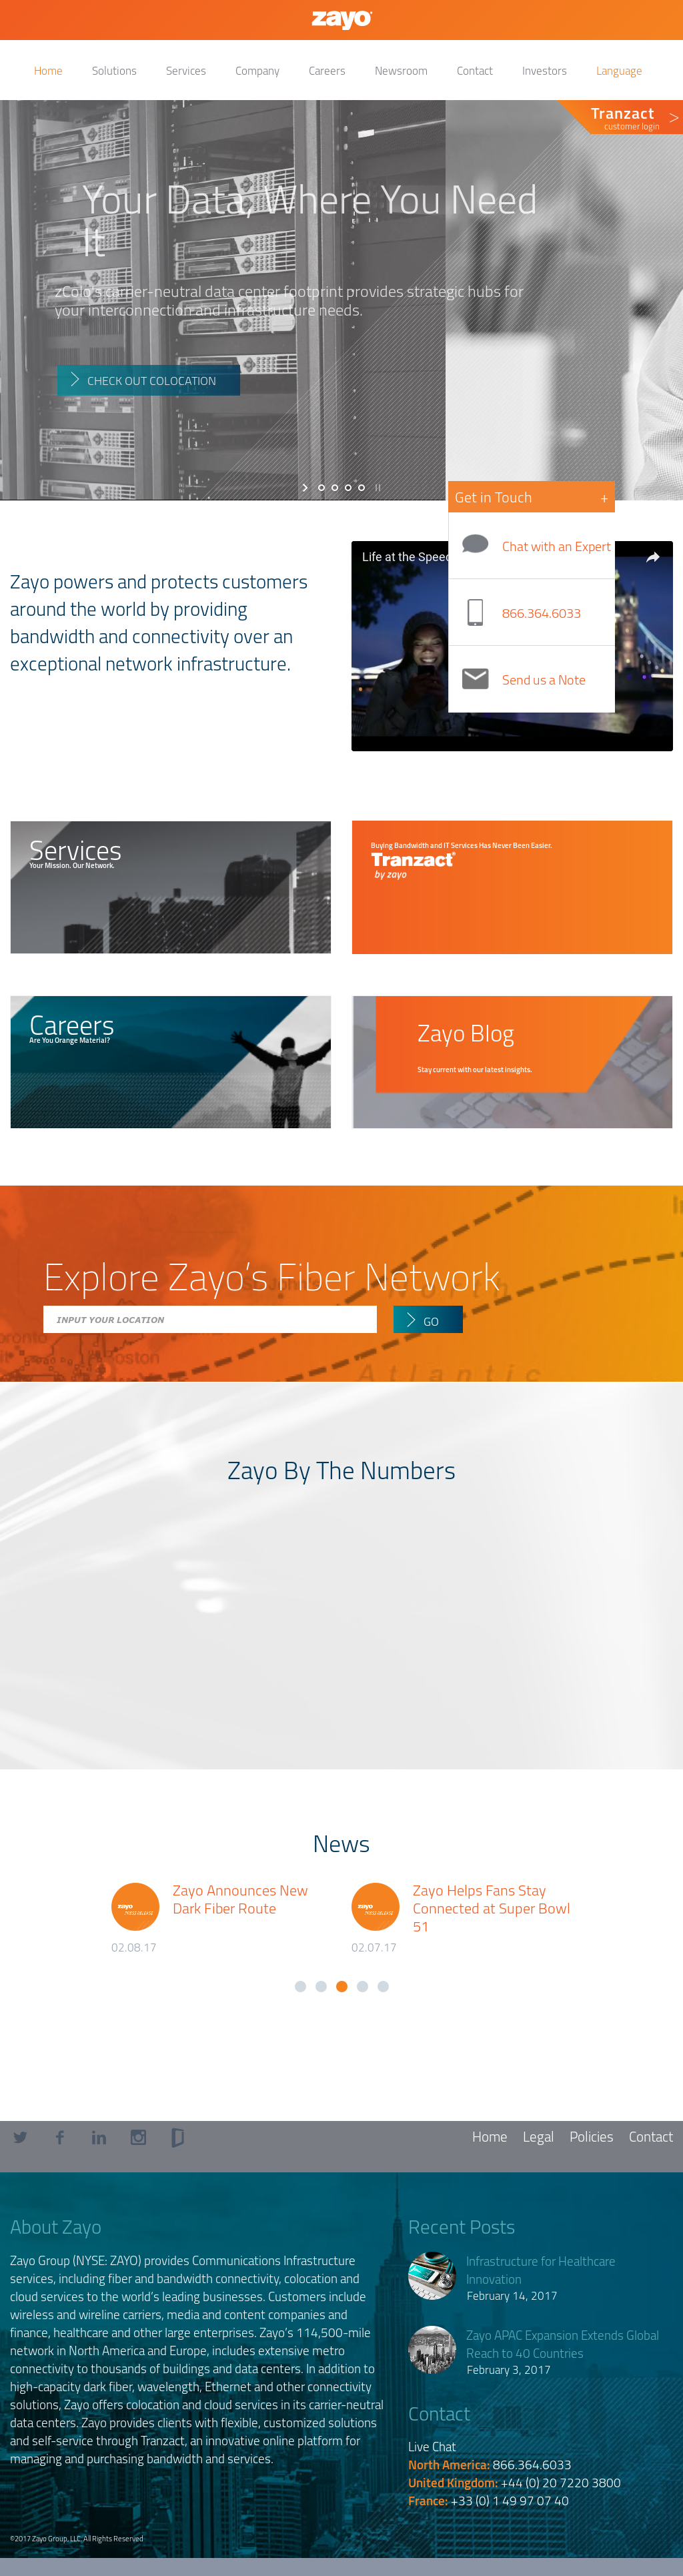 Zayo Group Competitors, Revenue and Employees - Owler Company Profile